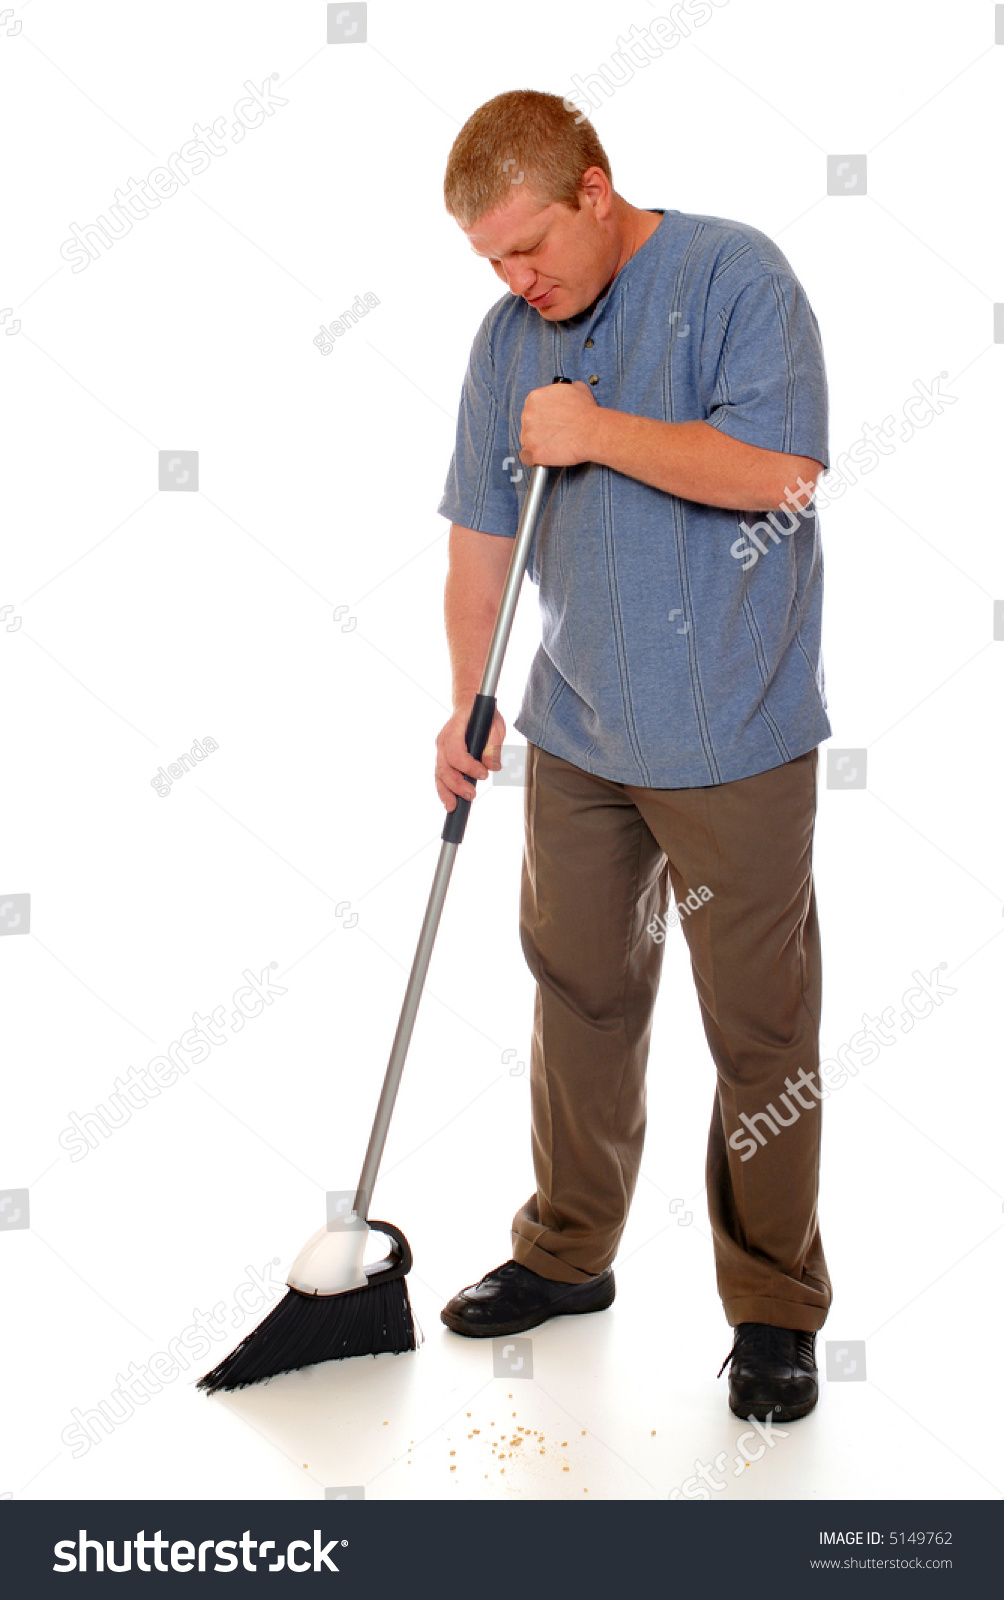 Man sweeping the floor with a home broom isolated on for To floor someone